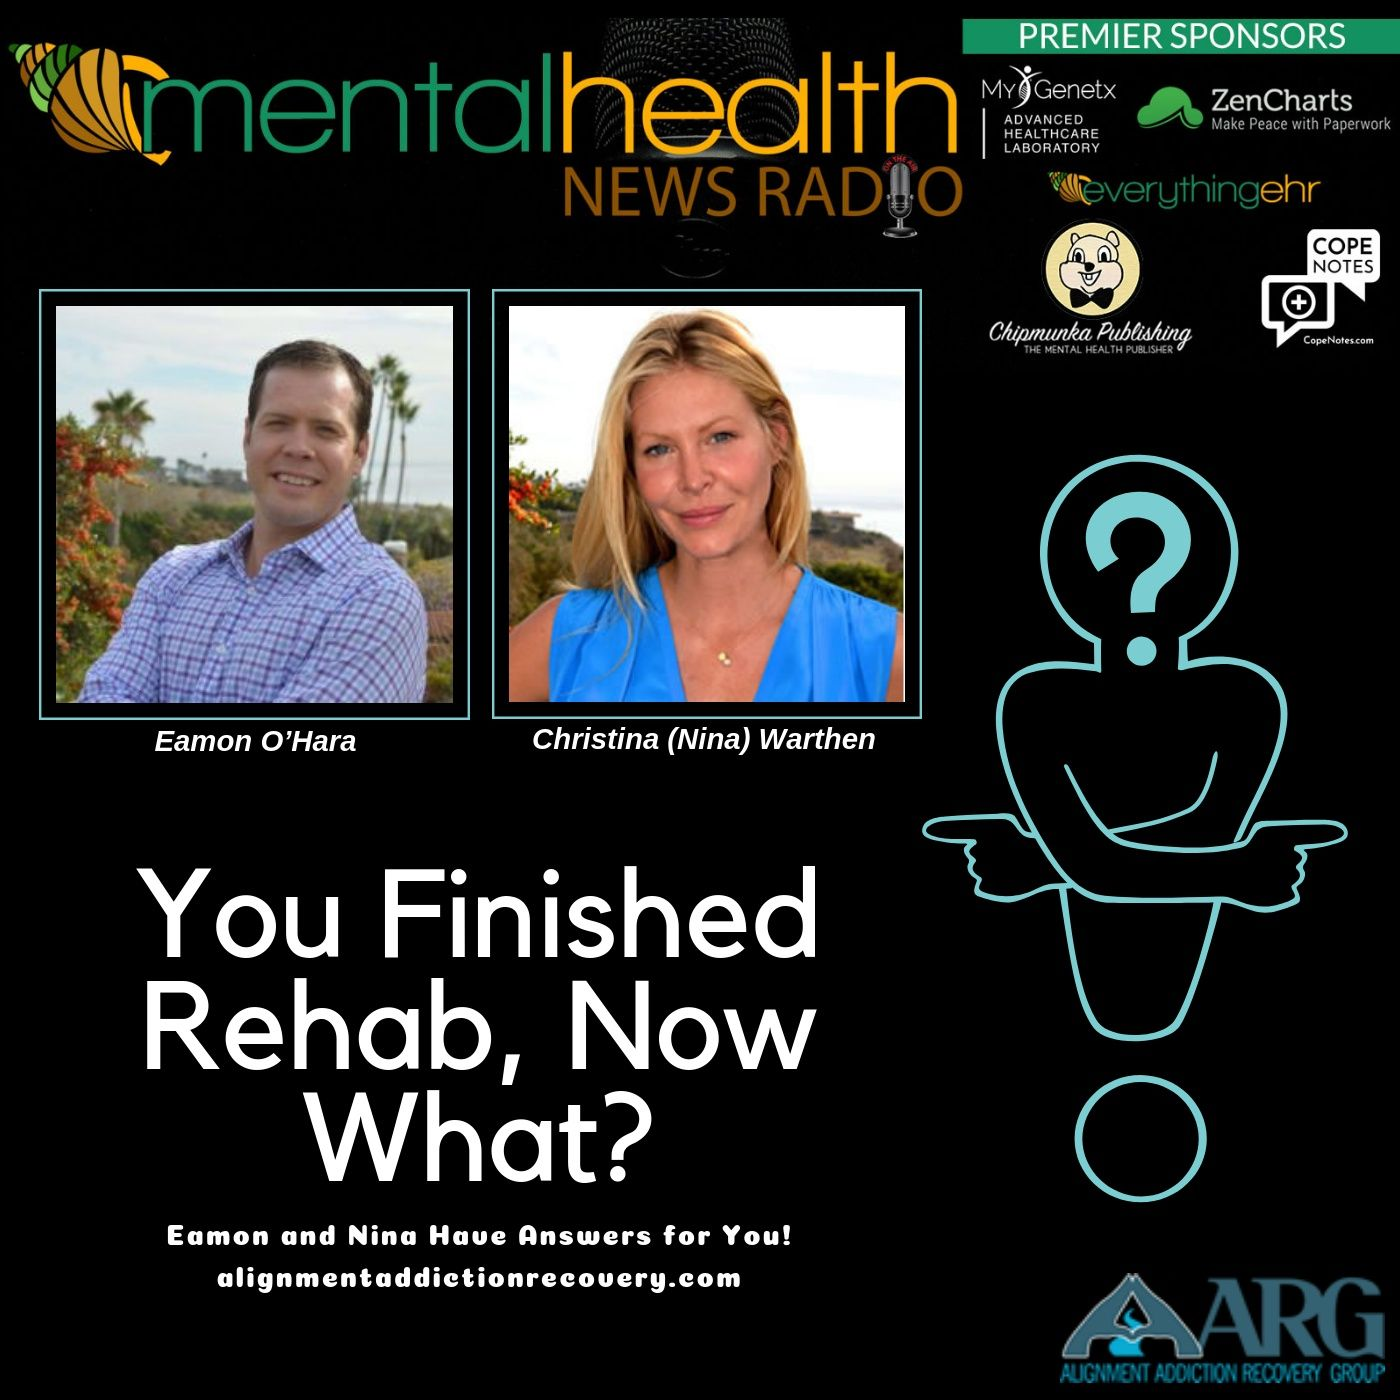 Mental Health News Radio - You Finished Rehab, Now What? Eamon and Nina Have Answers For You!